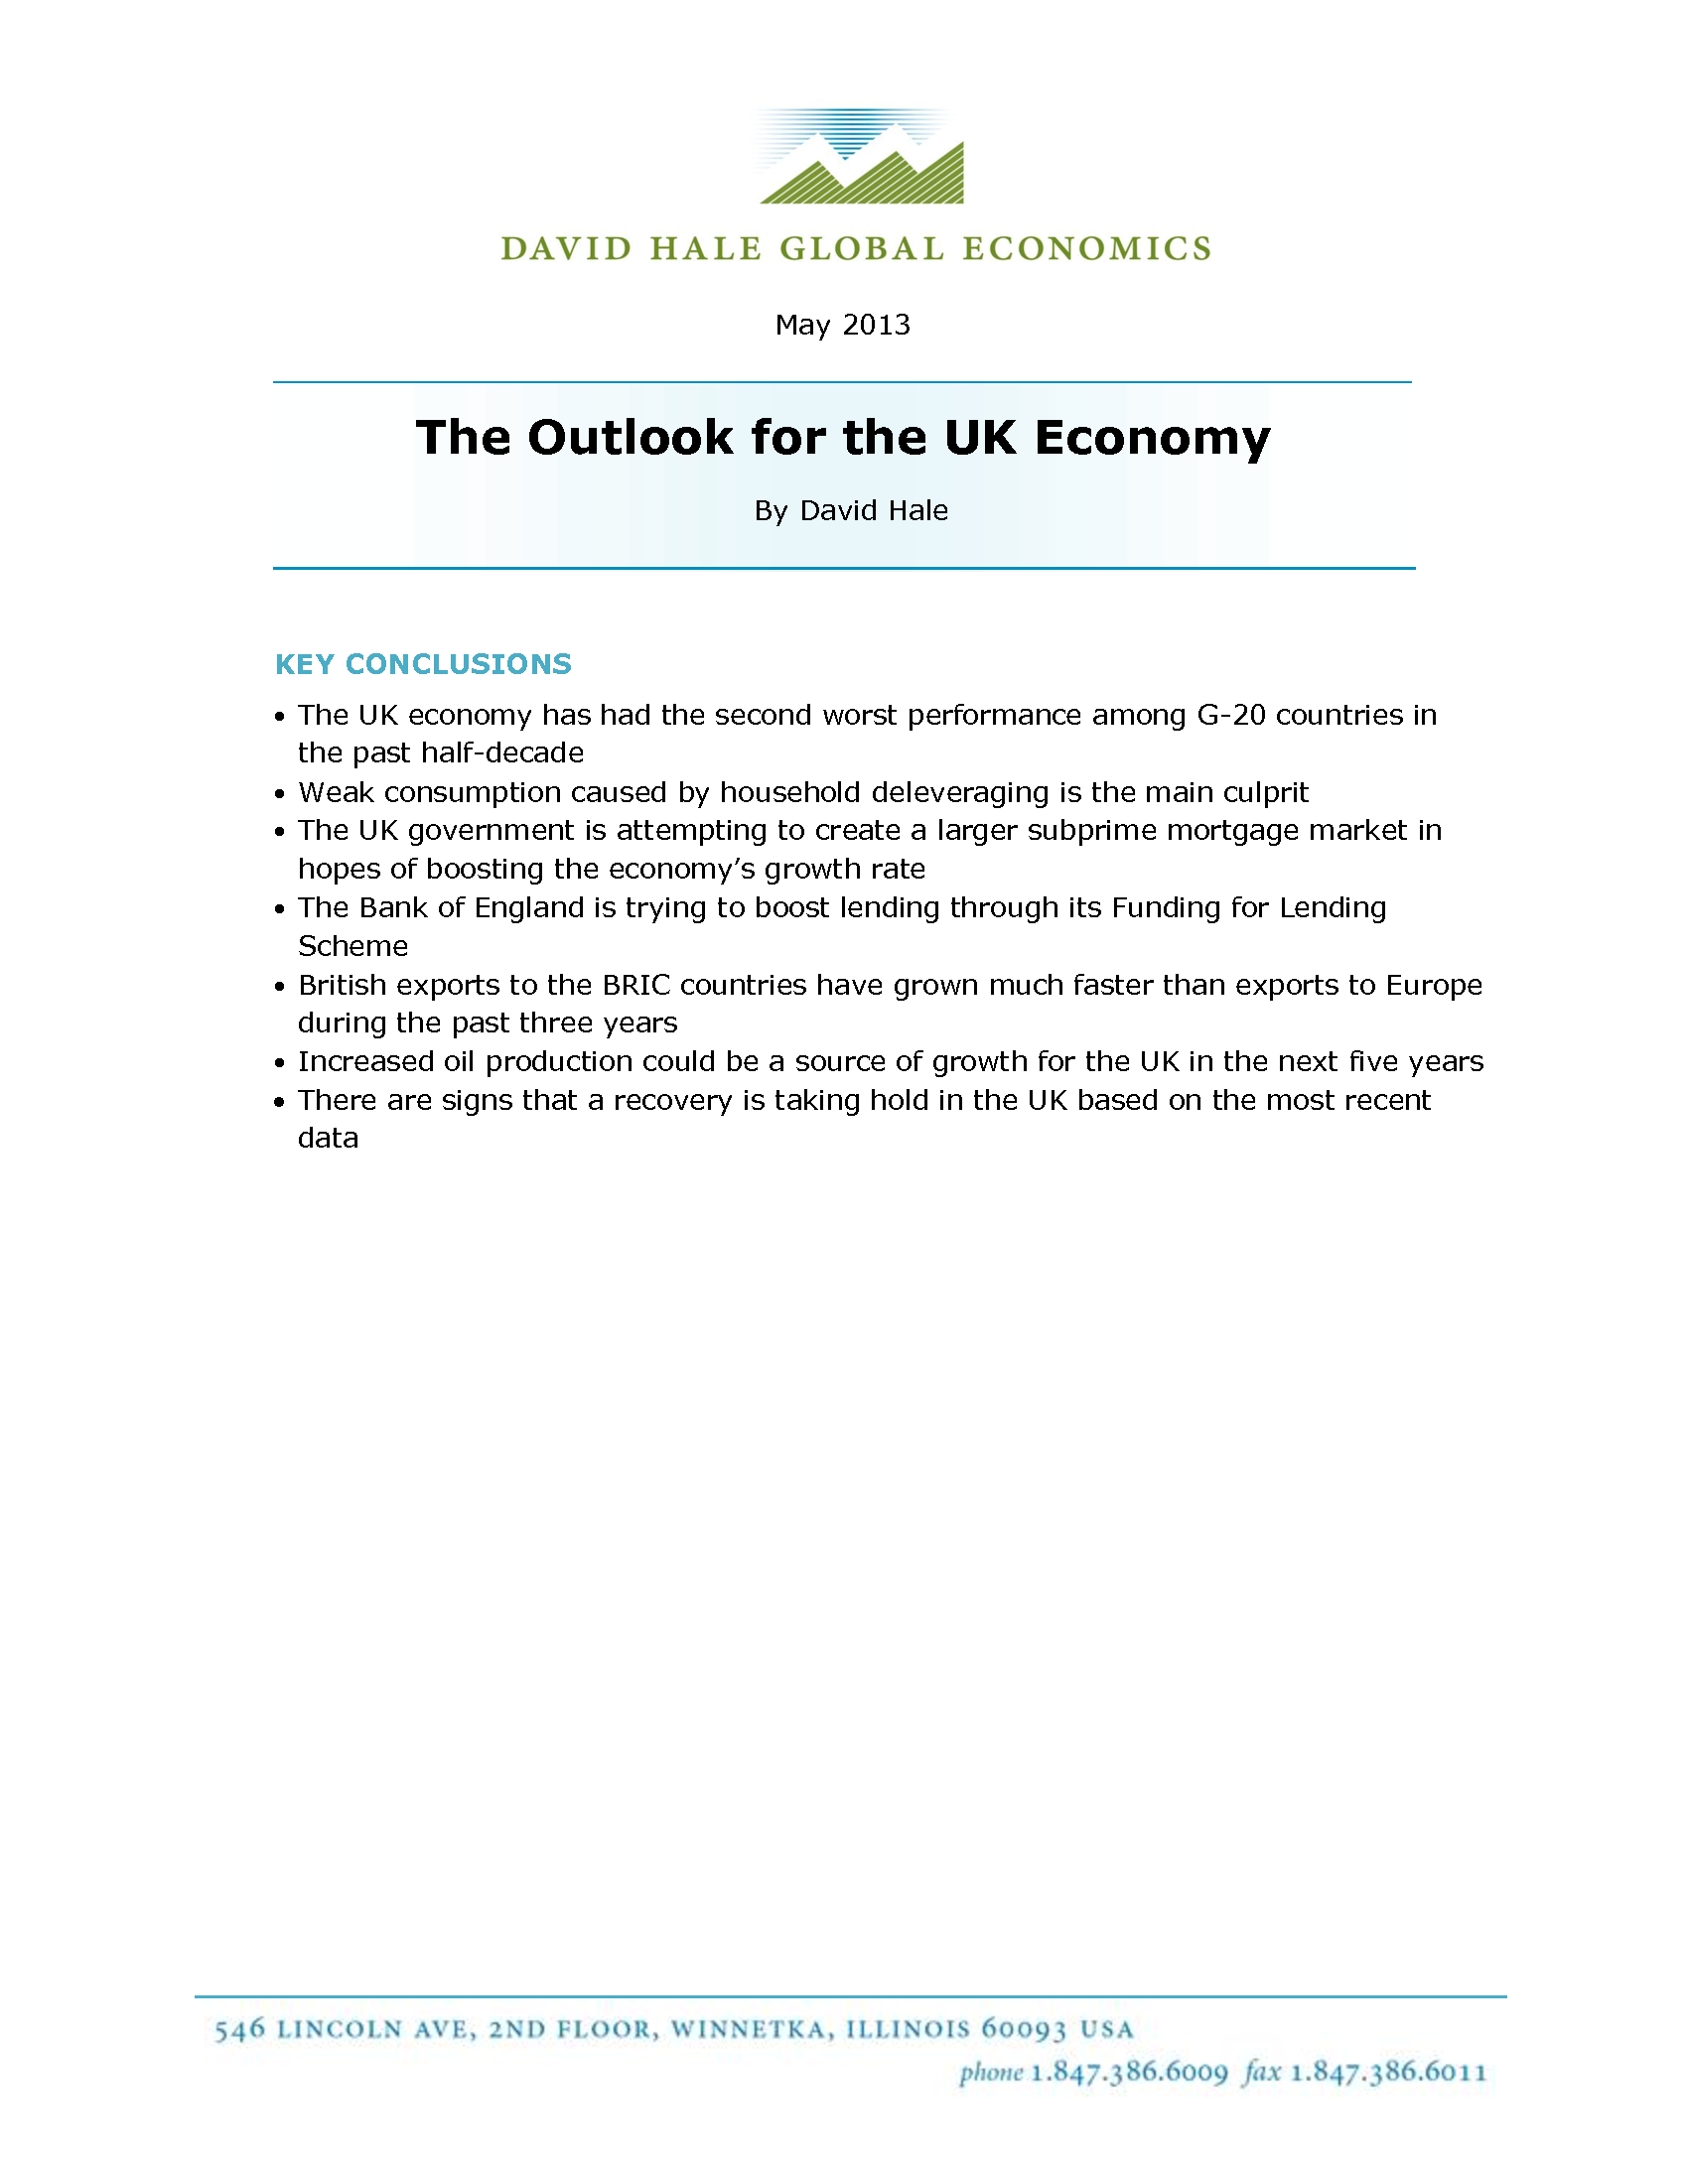 The Outlook for the UK Economy - Thumb 1